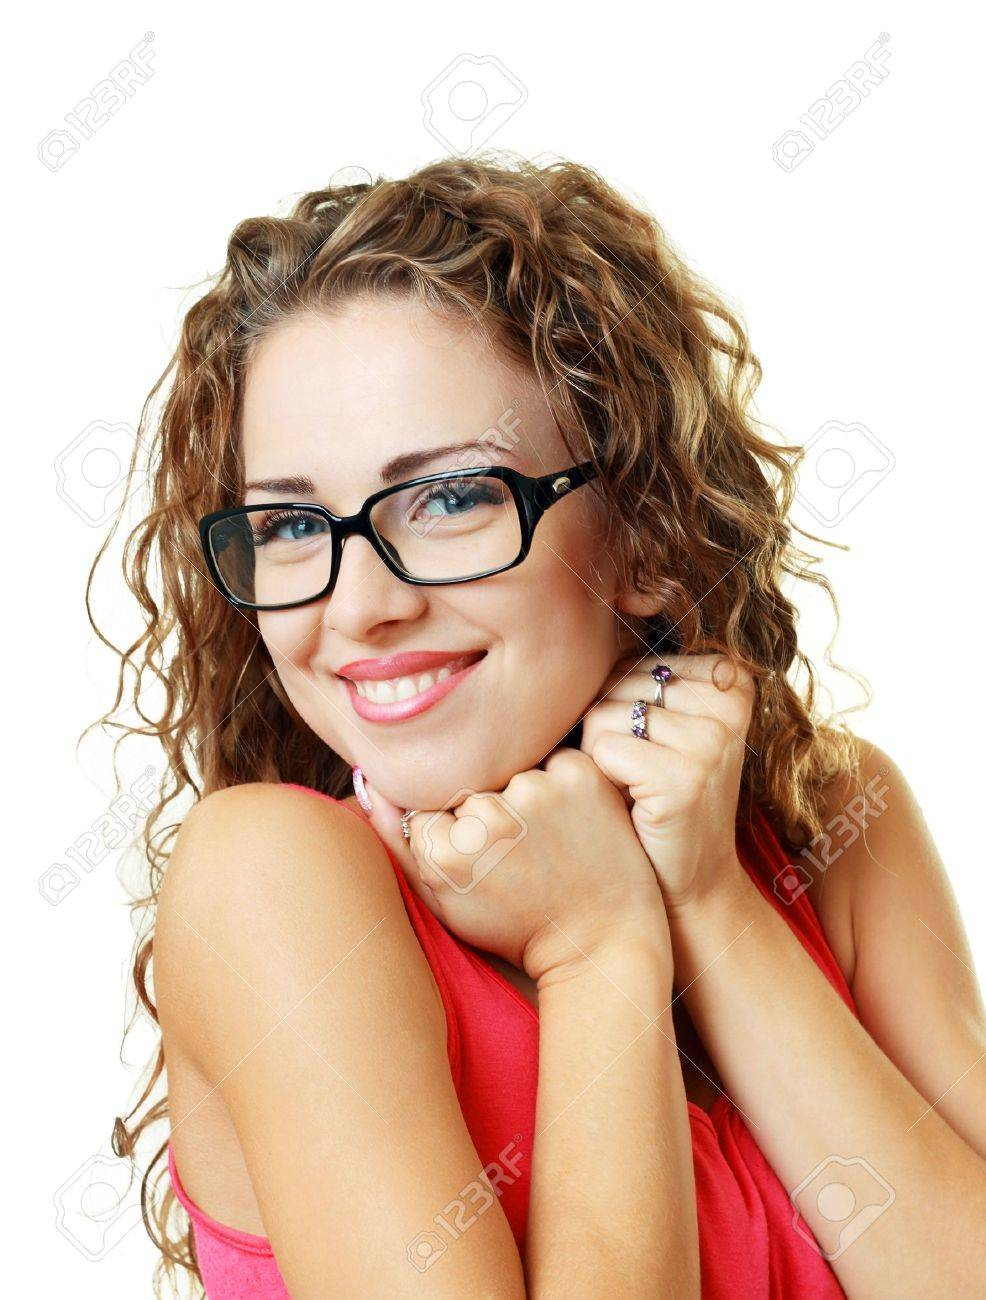 Beautiful young woman smiling with her new pair of eyeglasses isolated on white background Stock Photo - 17047803